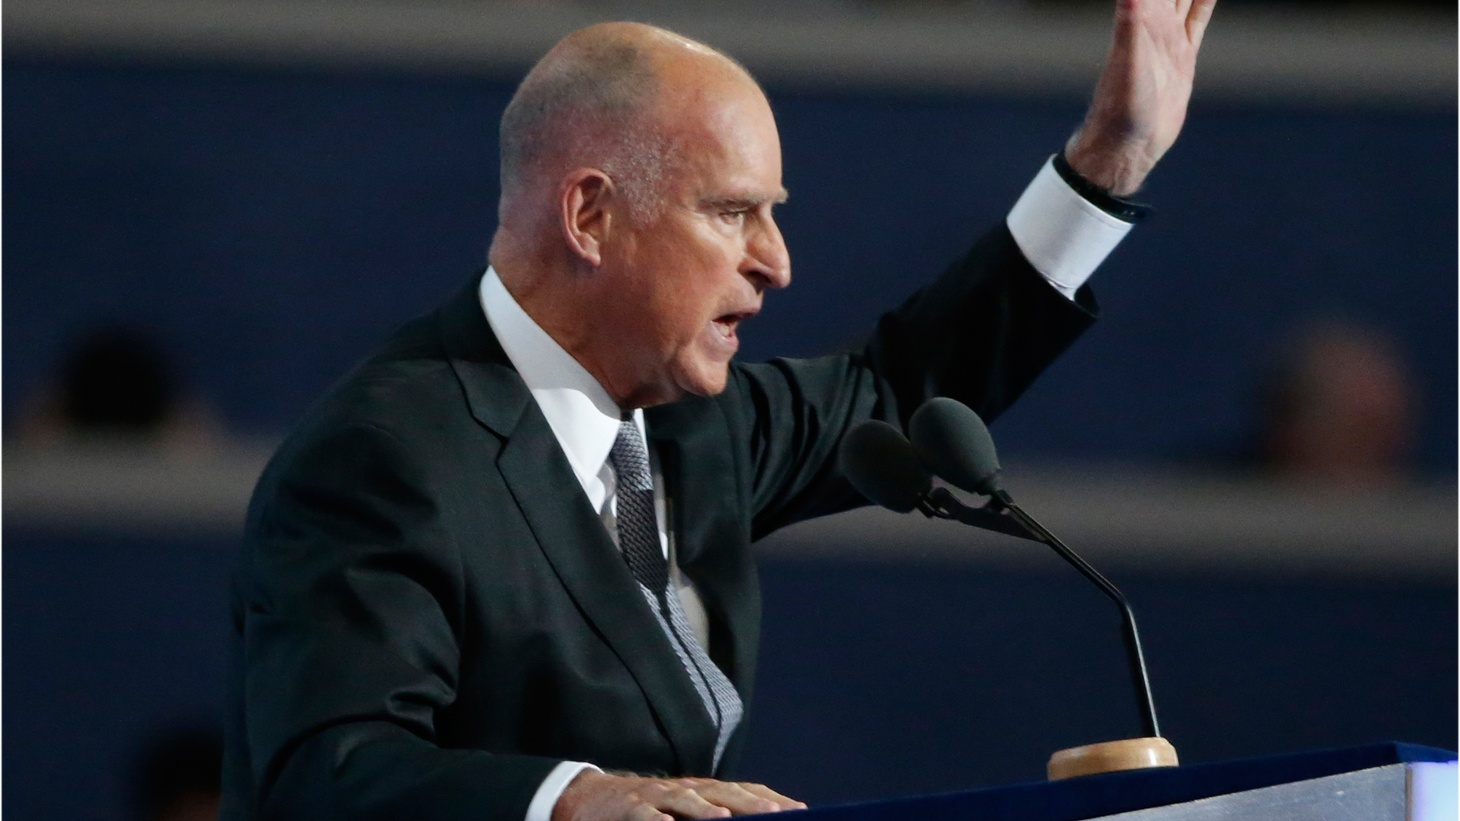 President Donald Trump reportedly wants the U.S. to withdraw from the Paris Climate Accord, and he's expected to announce a decision soon. California Governor Jerry Brown heads to China to strengthen climate and clean energy ties.